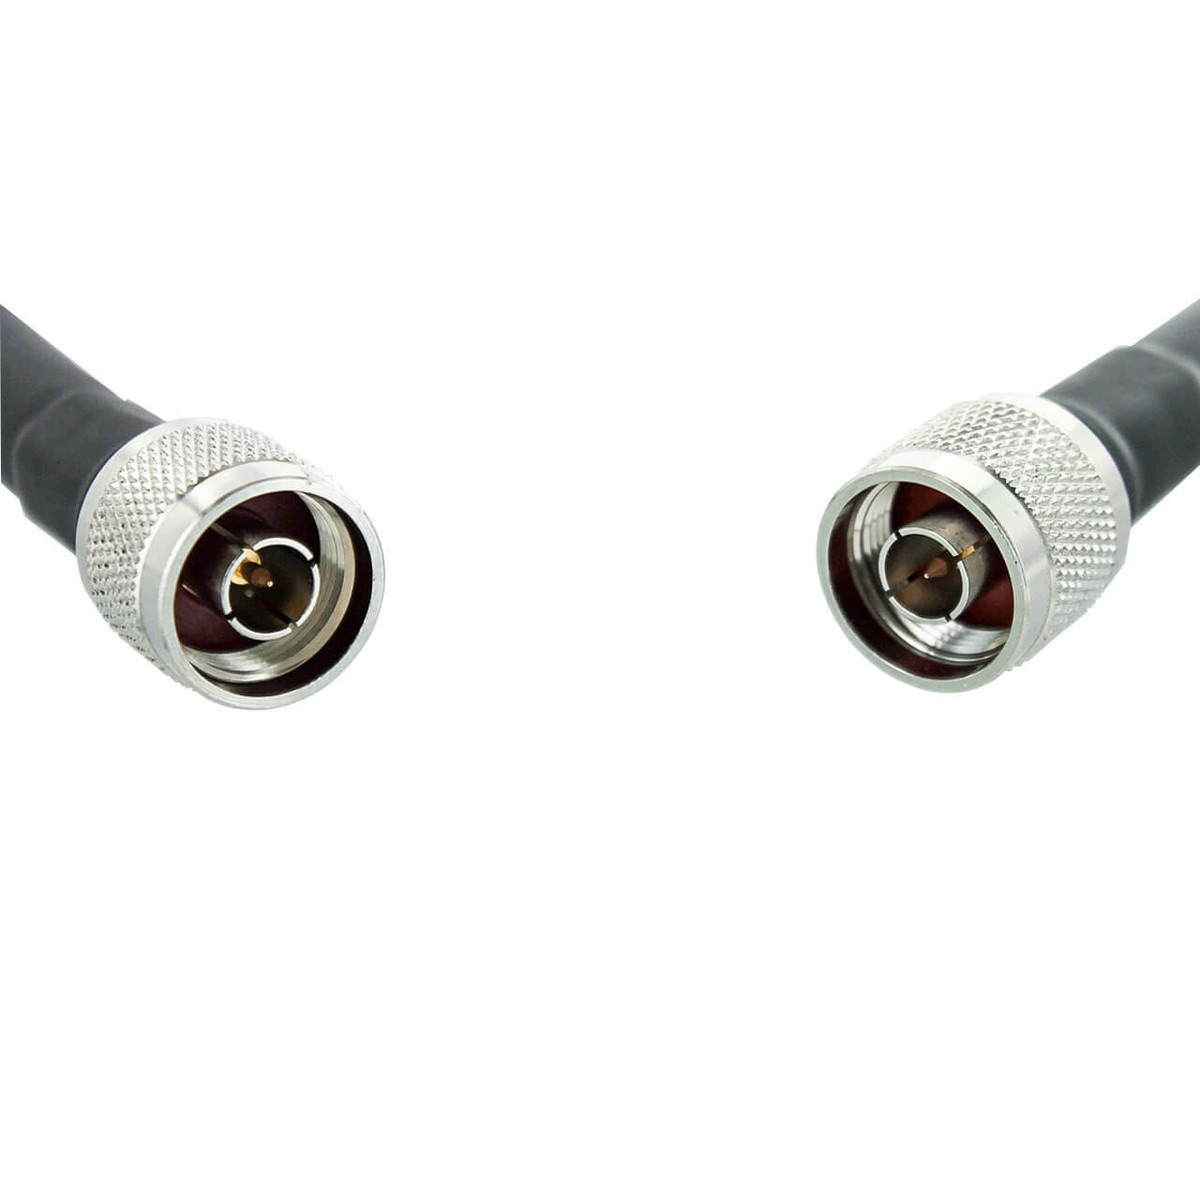 Bolton Technical N-Male to N-Male Bolton400 Ultra Low-Loss Coax Cable | 75 ft. Cable